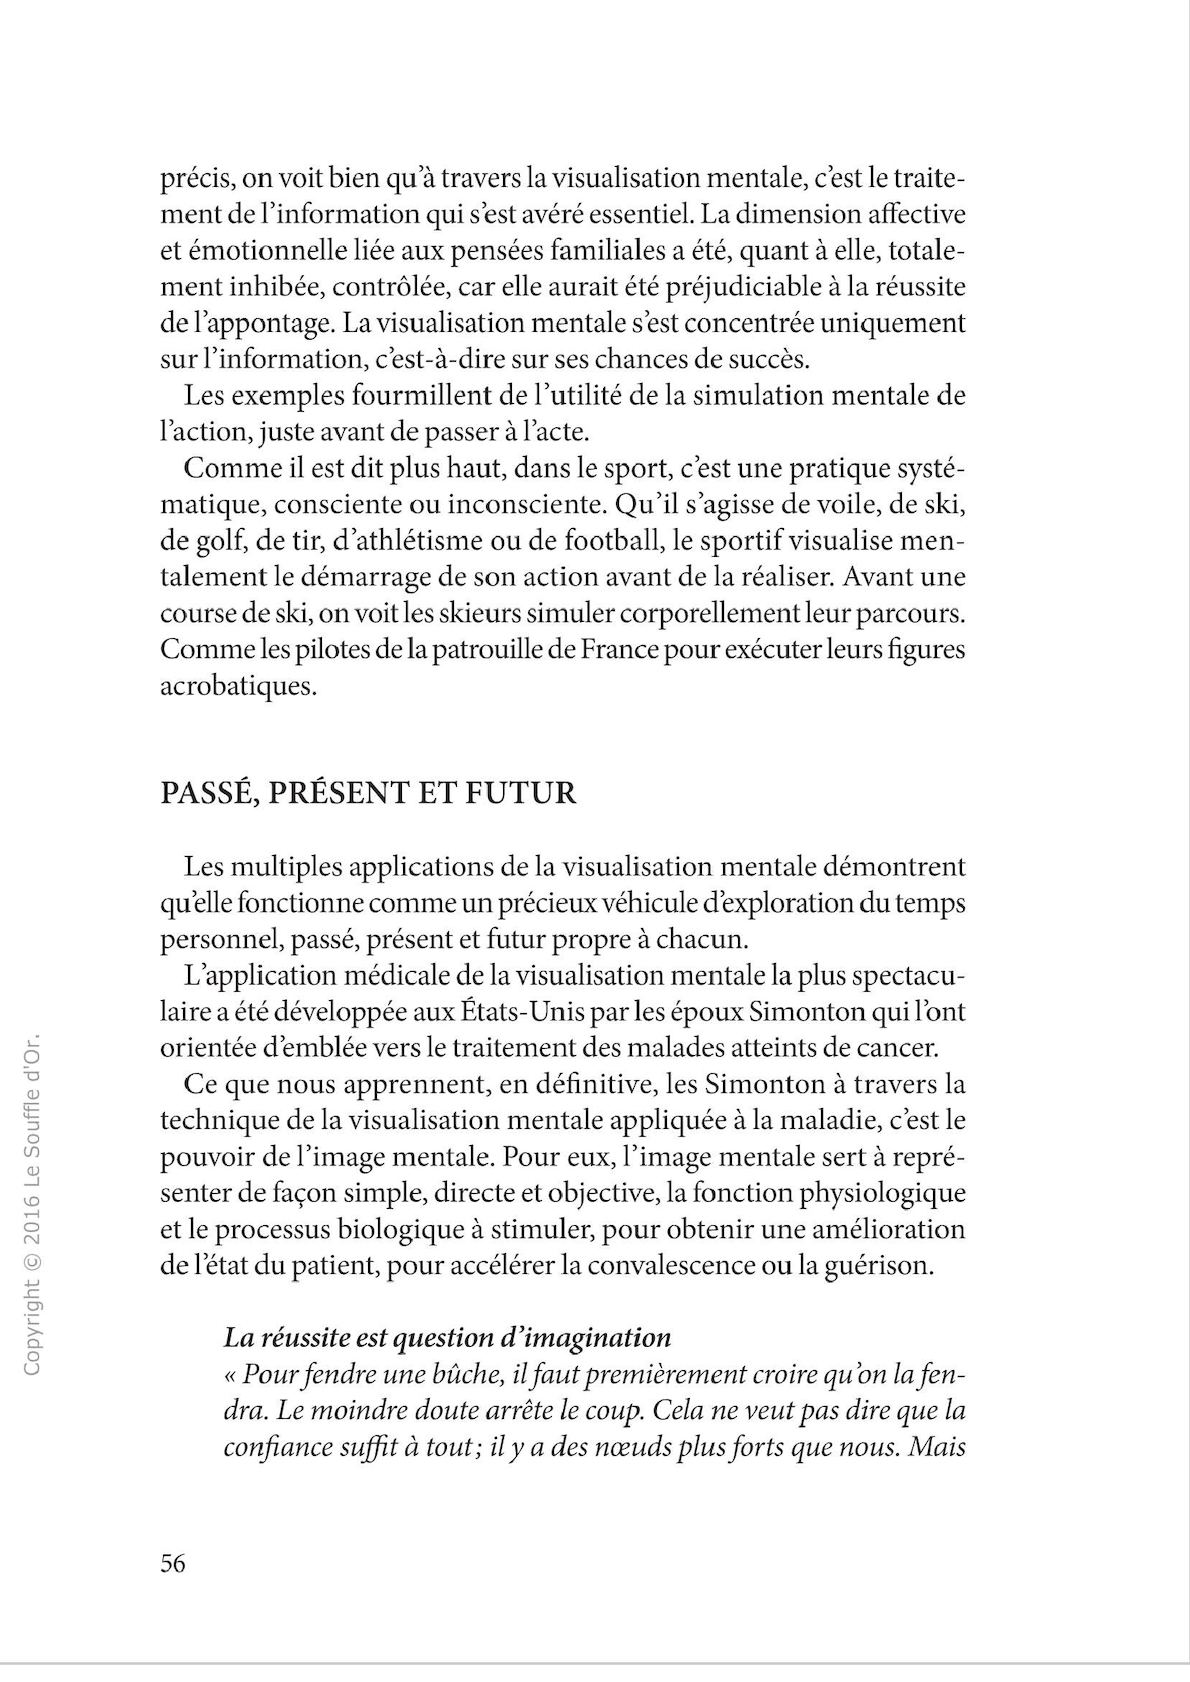 Page 57